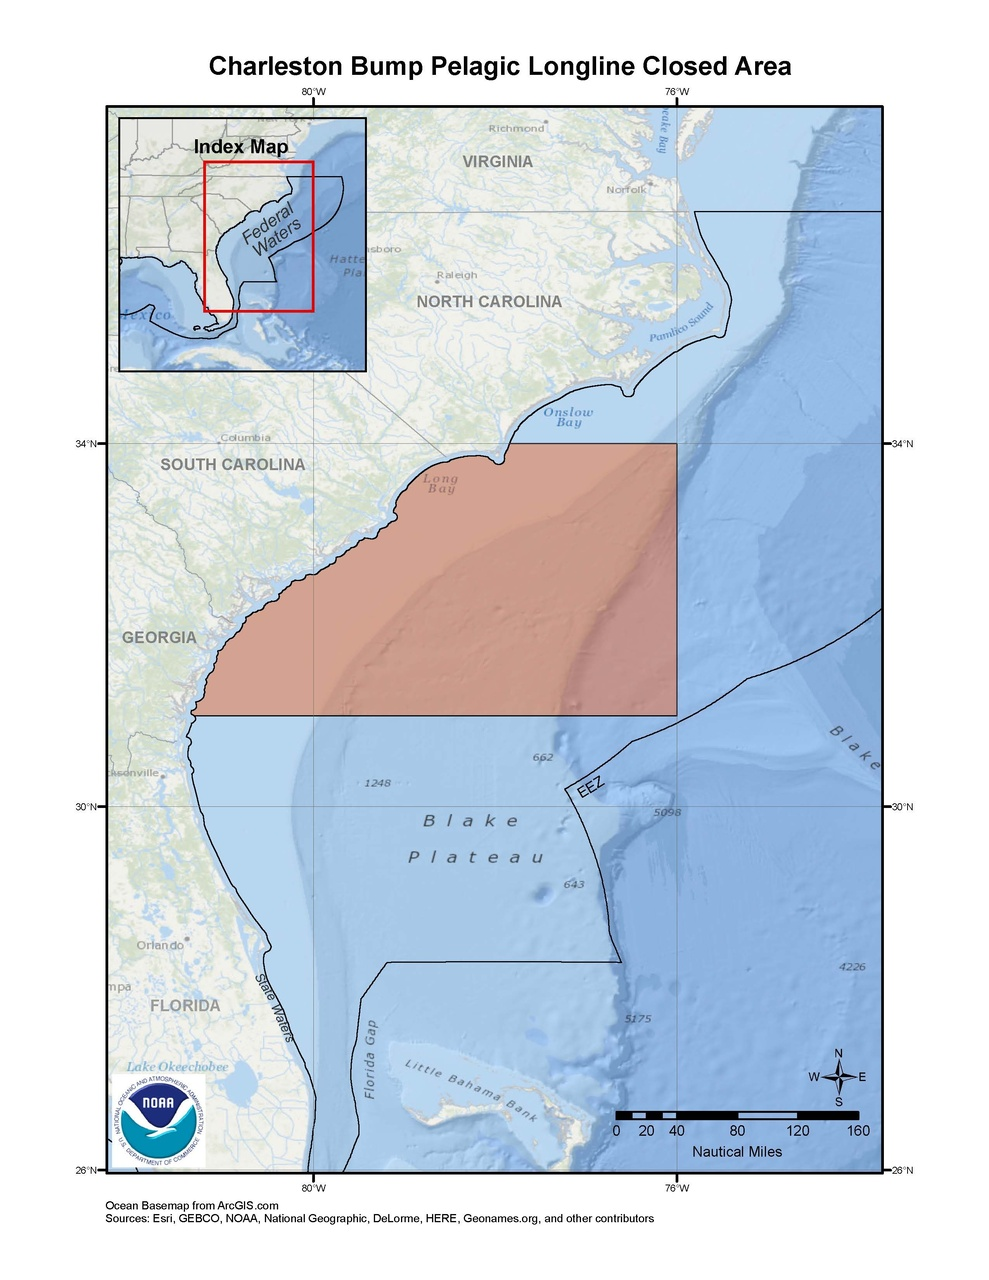 This is a map of Charleston Bump pelagic longline closed area in the South Atlantic Region.